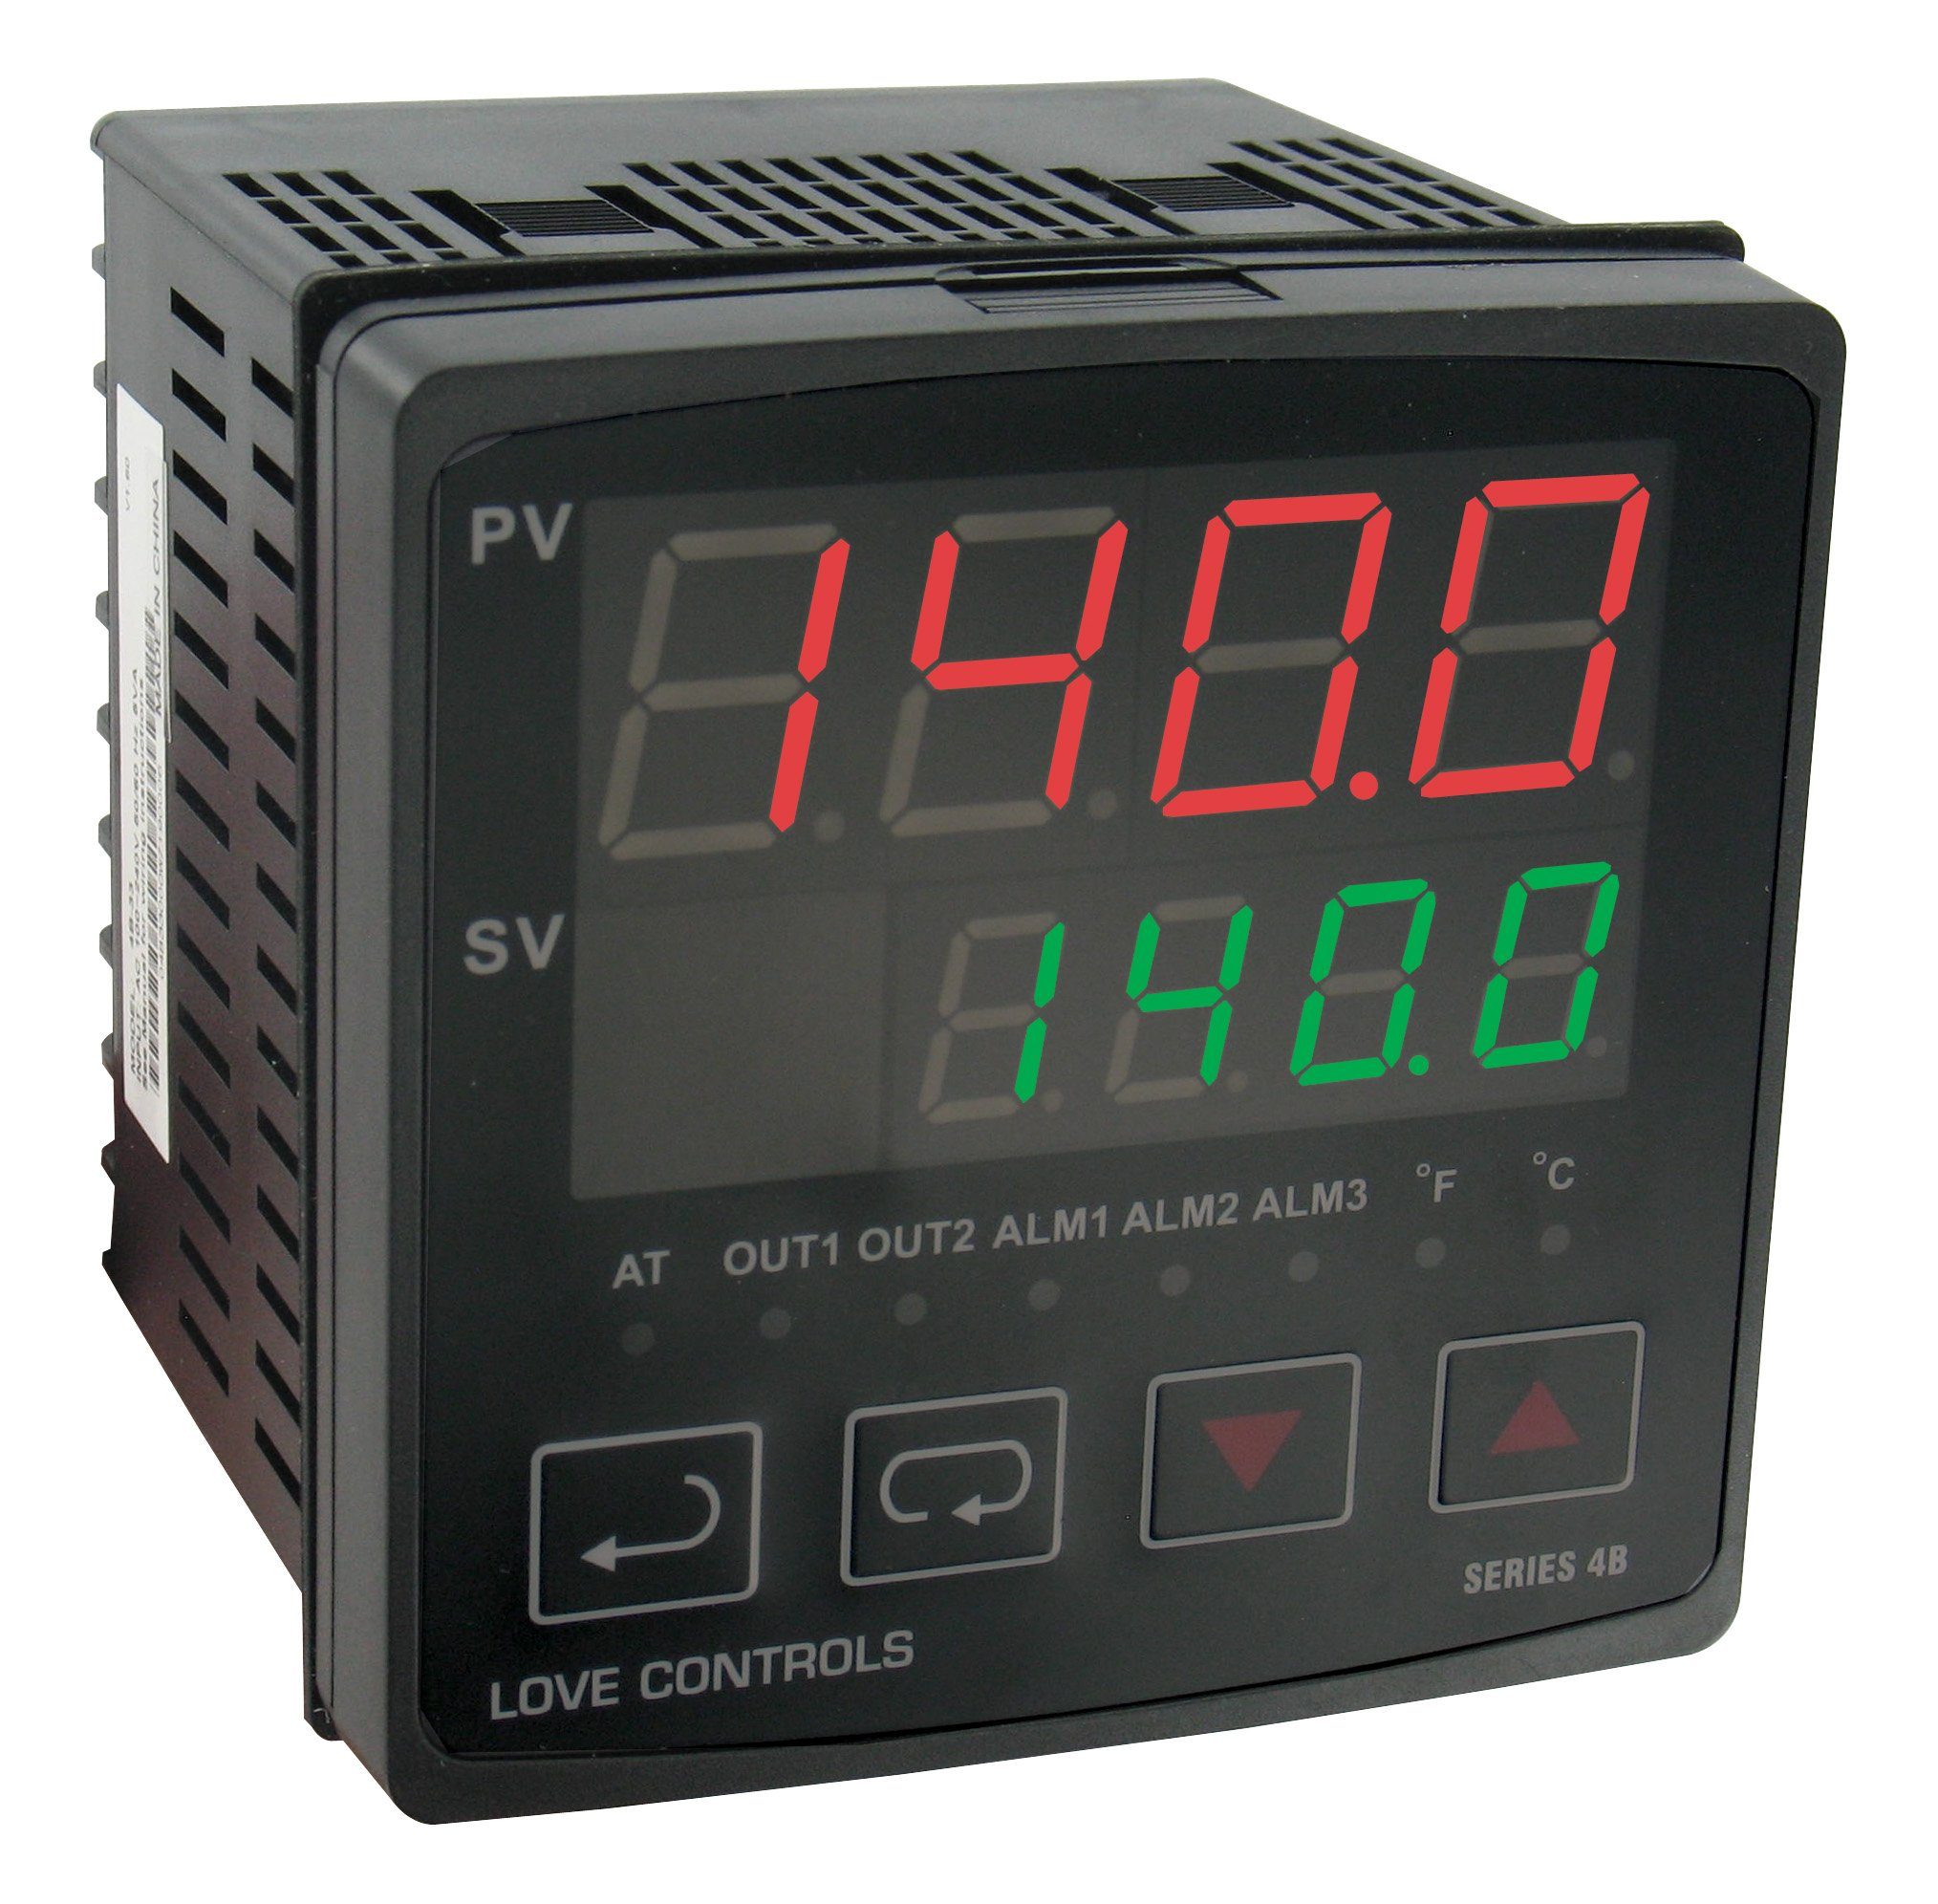 Love 1/4 DIN Temp/Proc Controller, 4B-63-LV, Linear Voltage Output 1 & Relay Output 2, Low Voltage